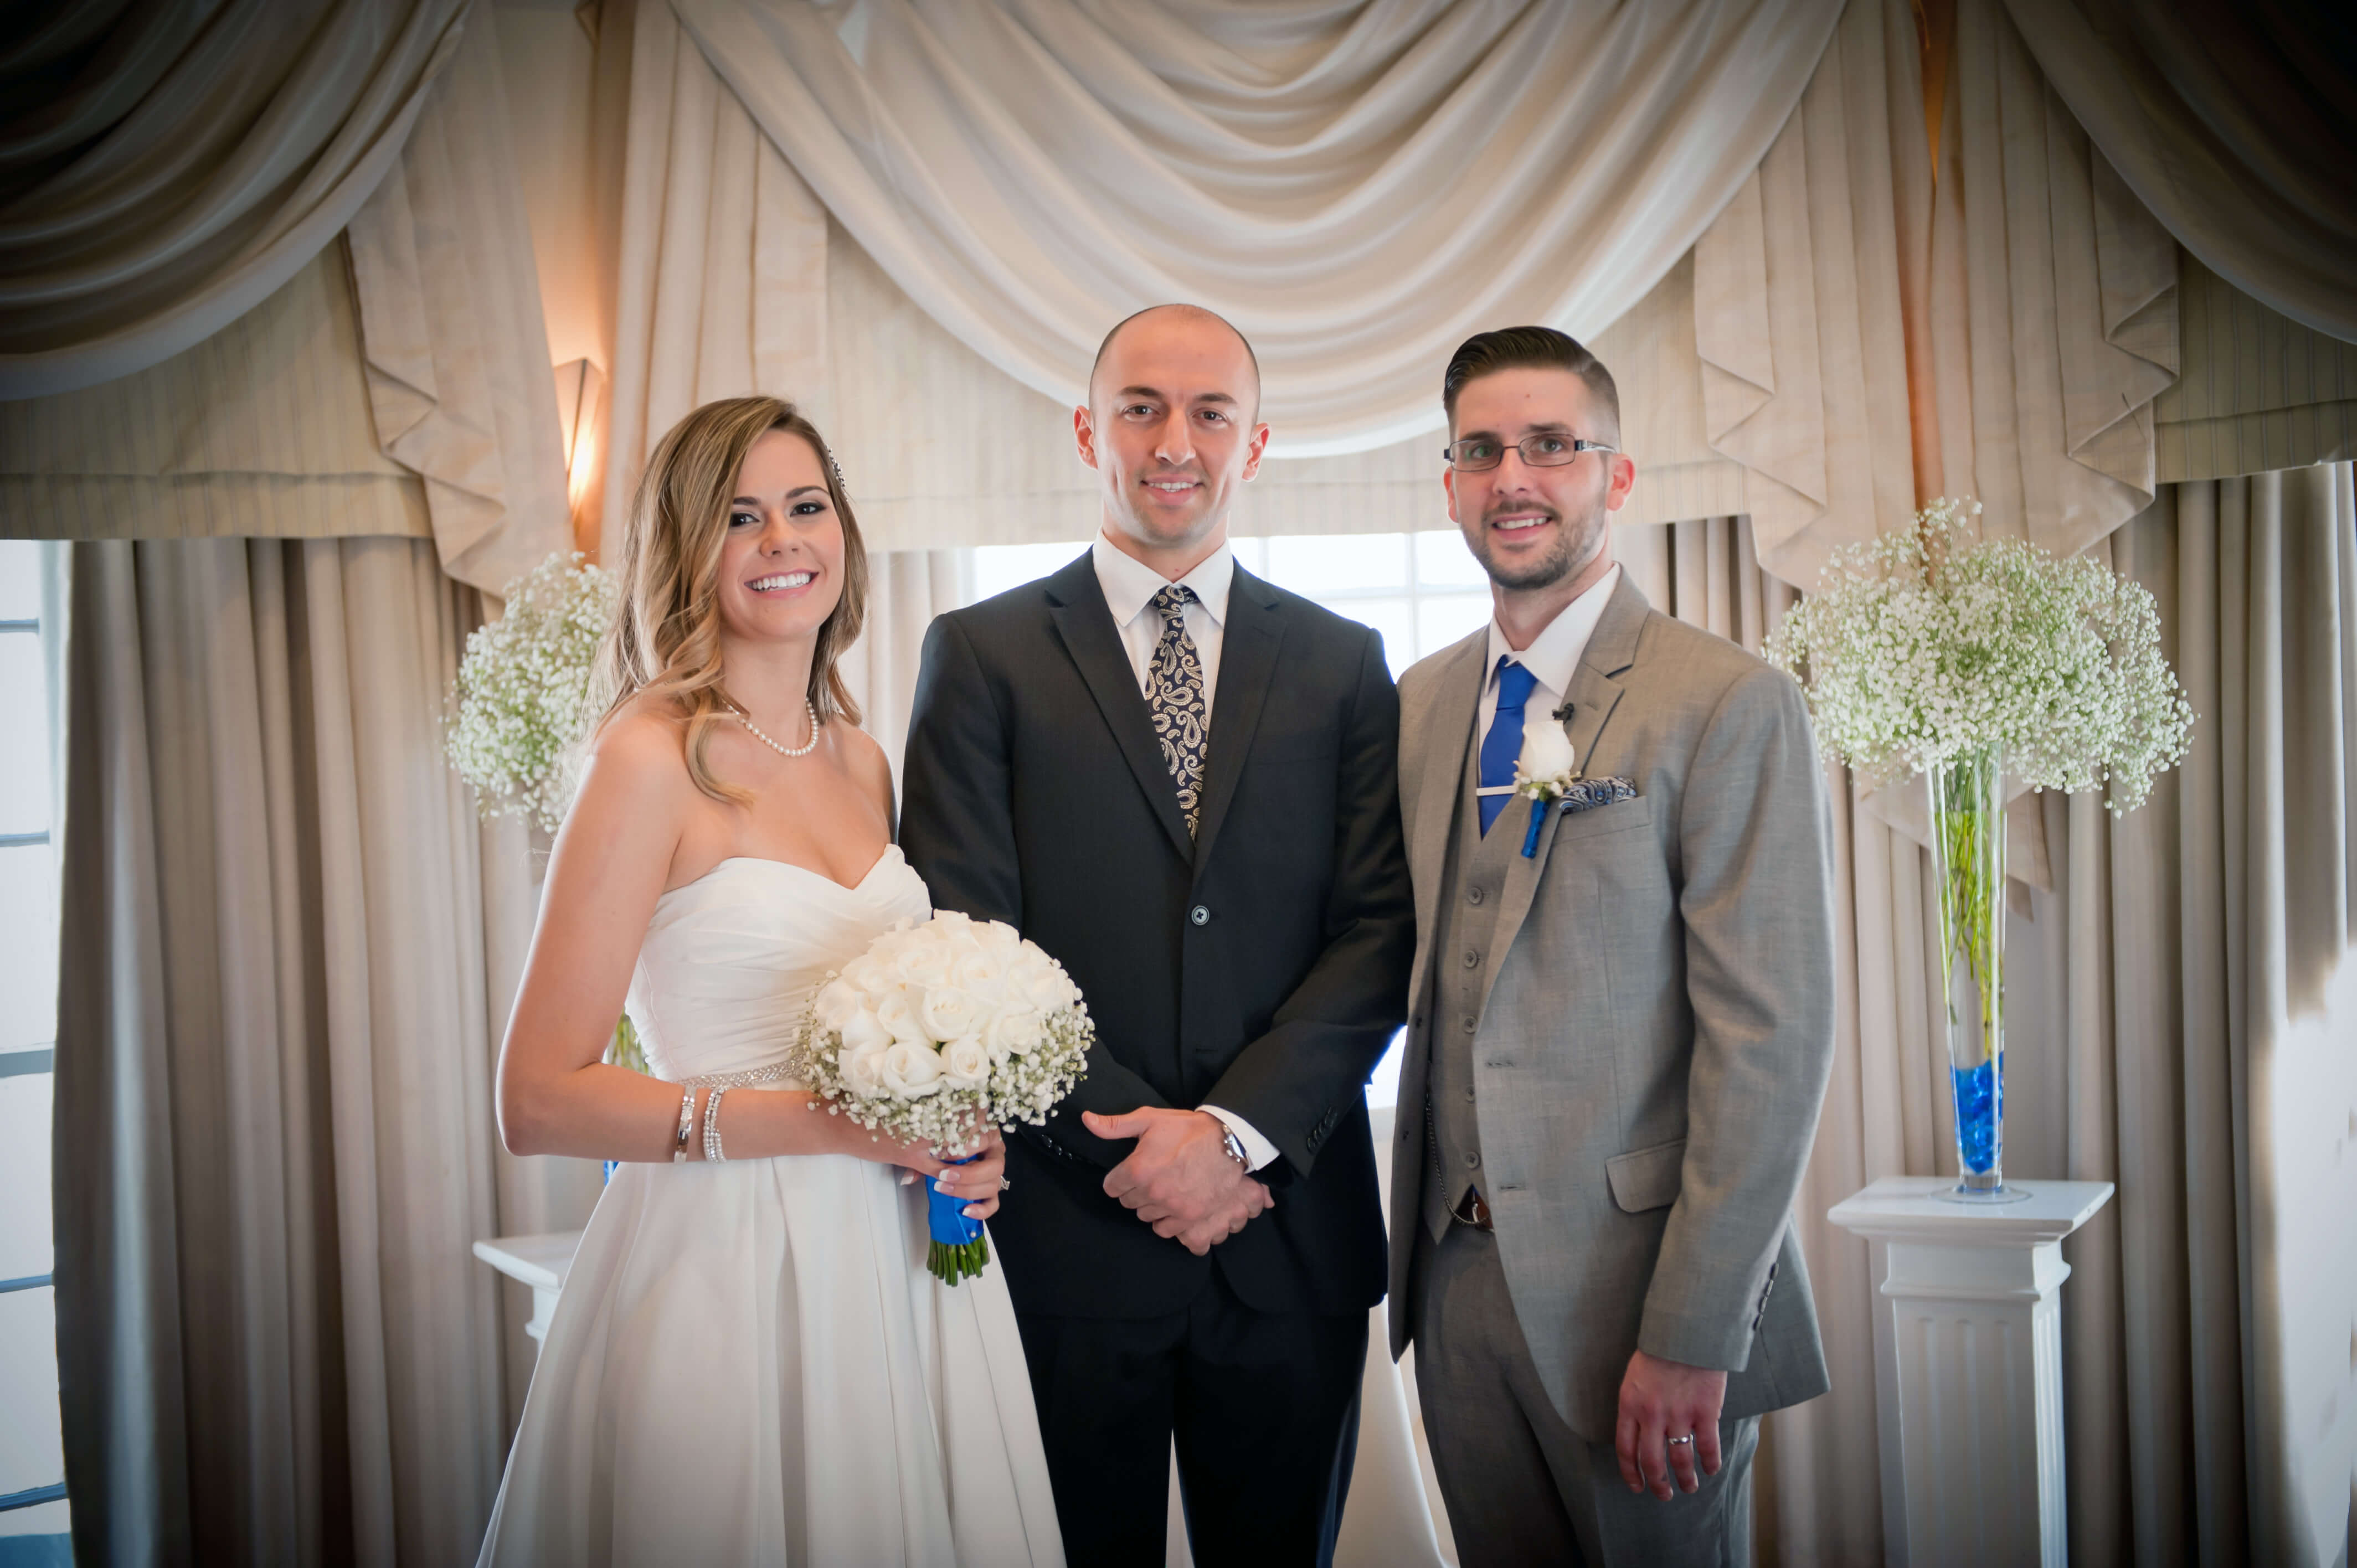 alex rajak wedding officiant toronto (1)